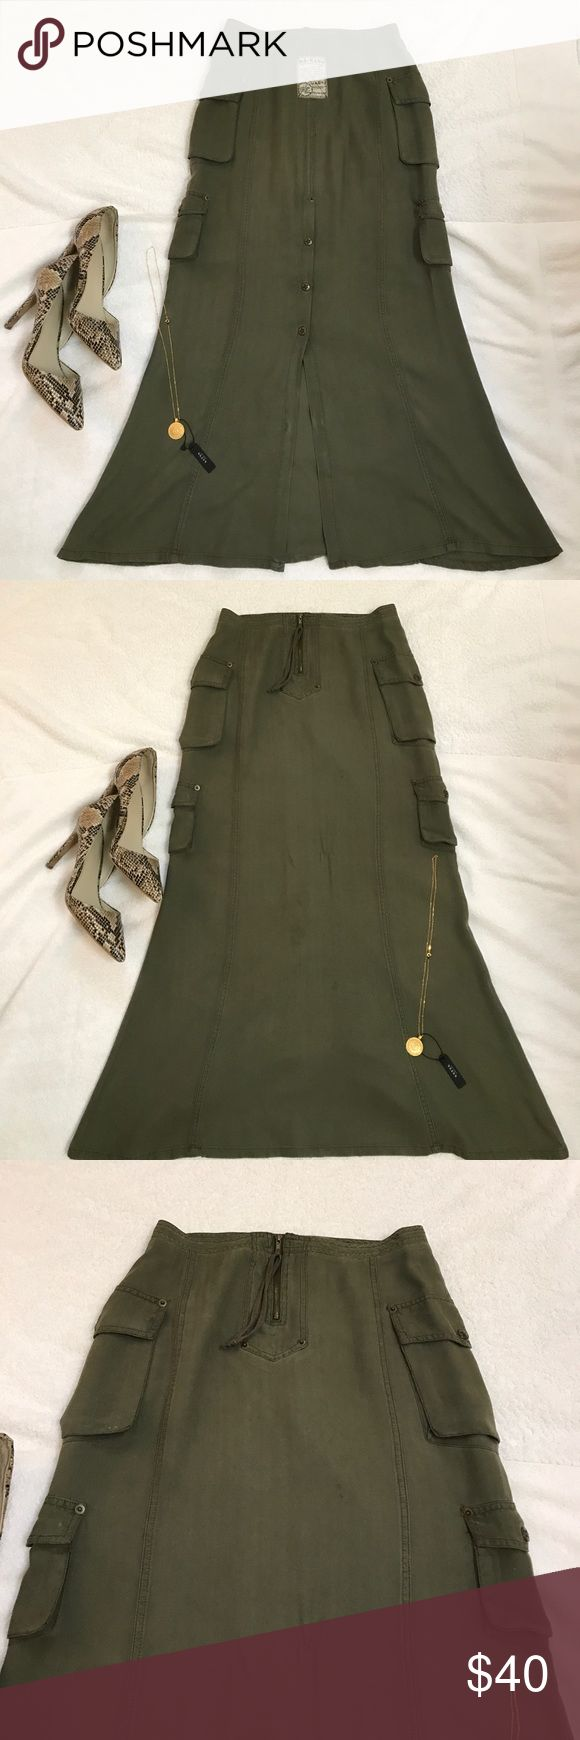 Army Girl Maxi Skirt, with slit in the back Army Girl Maxi Skirt, with slit in the back da-nang Skirts Maxi